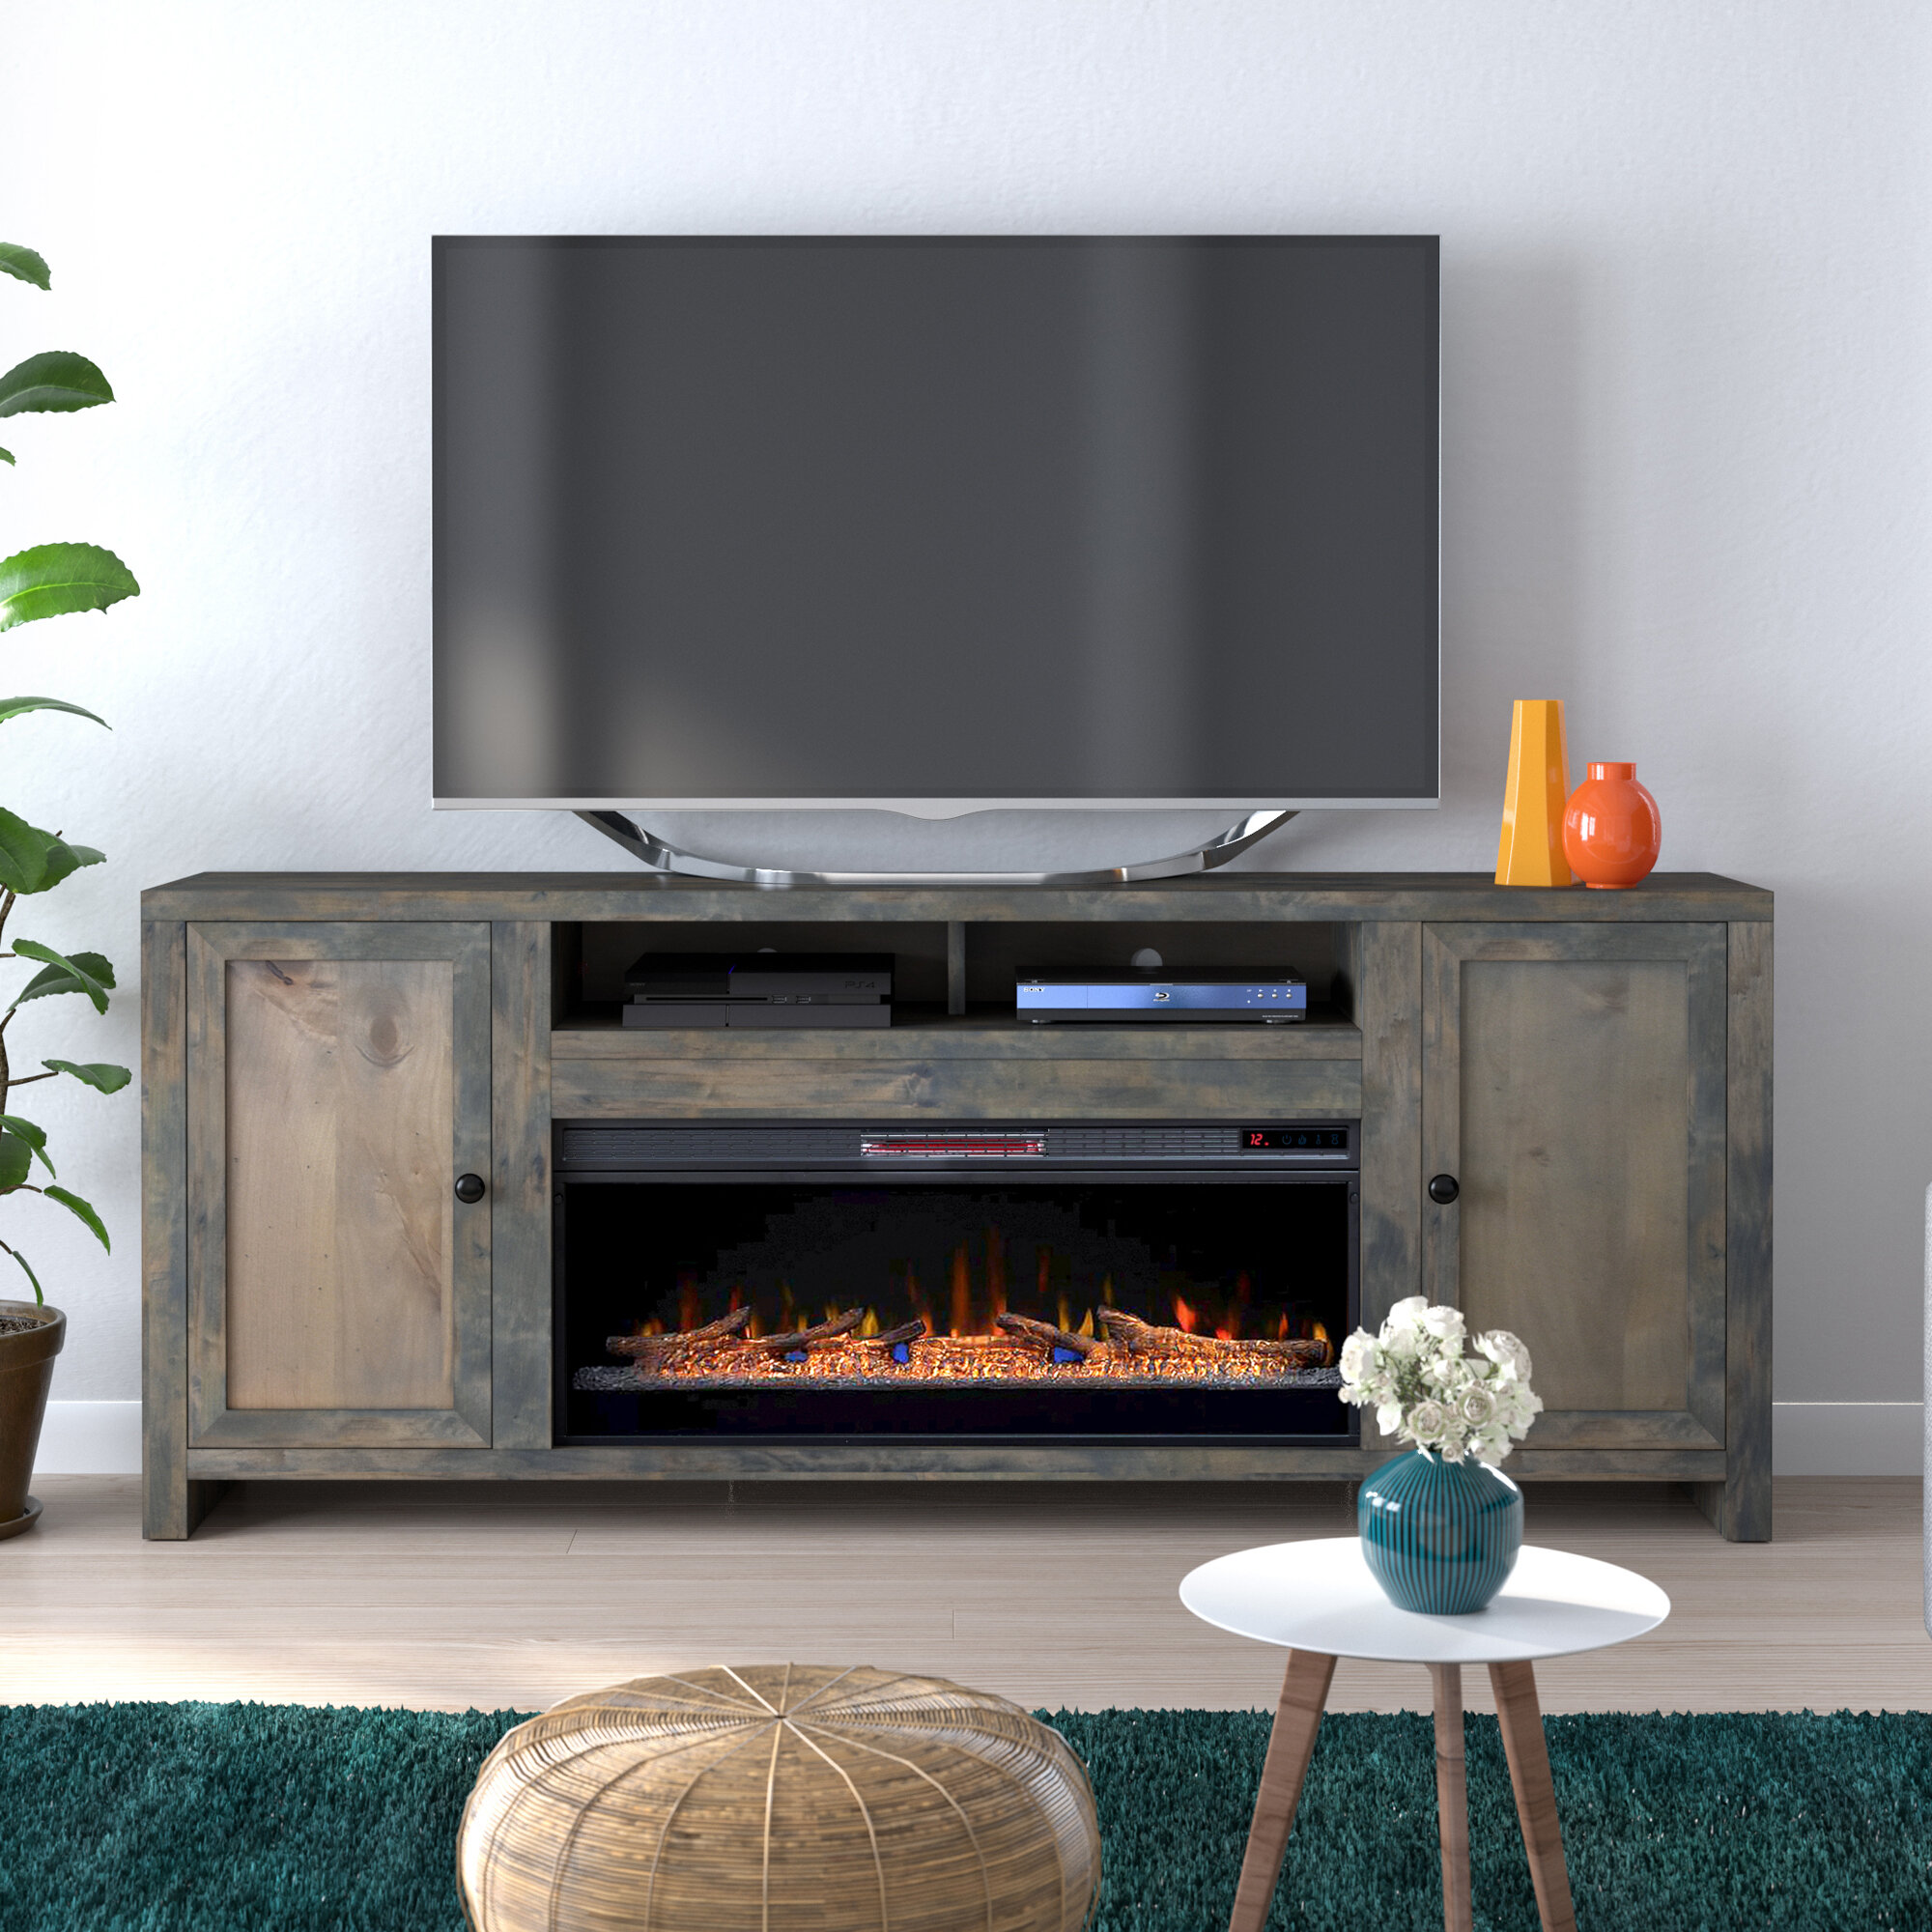 Loon Peak Lyla Tv Stand For Tvs Up To 88 With Electric Fireplace Included Reviews Wayfair